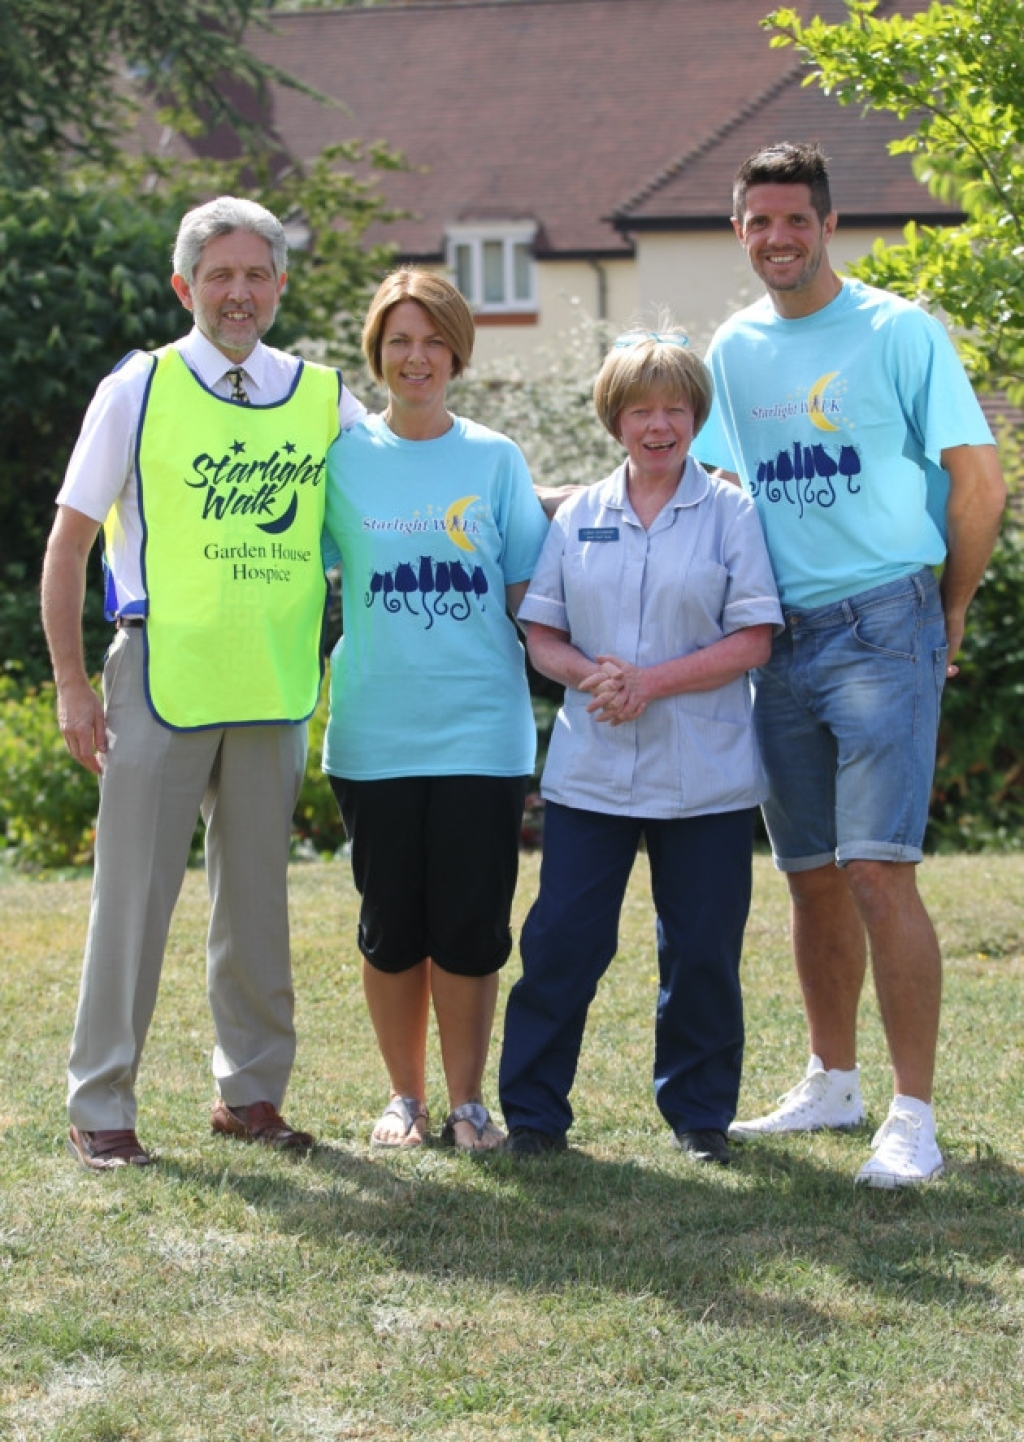 Final Push For Letchworth Starlight Walk Entries | Stevenage intended for Garden House Hospice Charity Walk